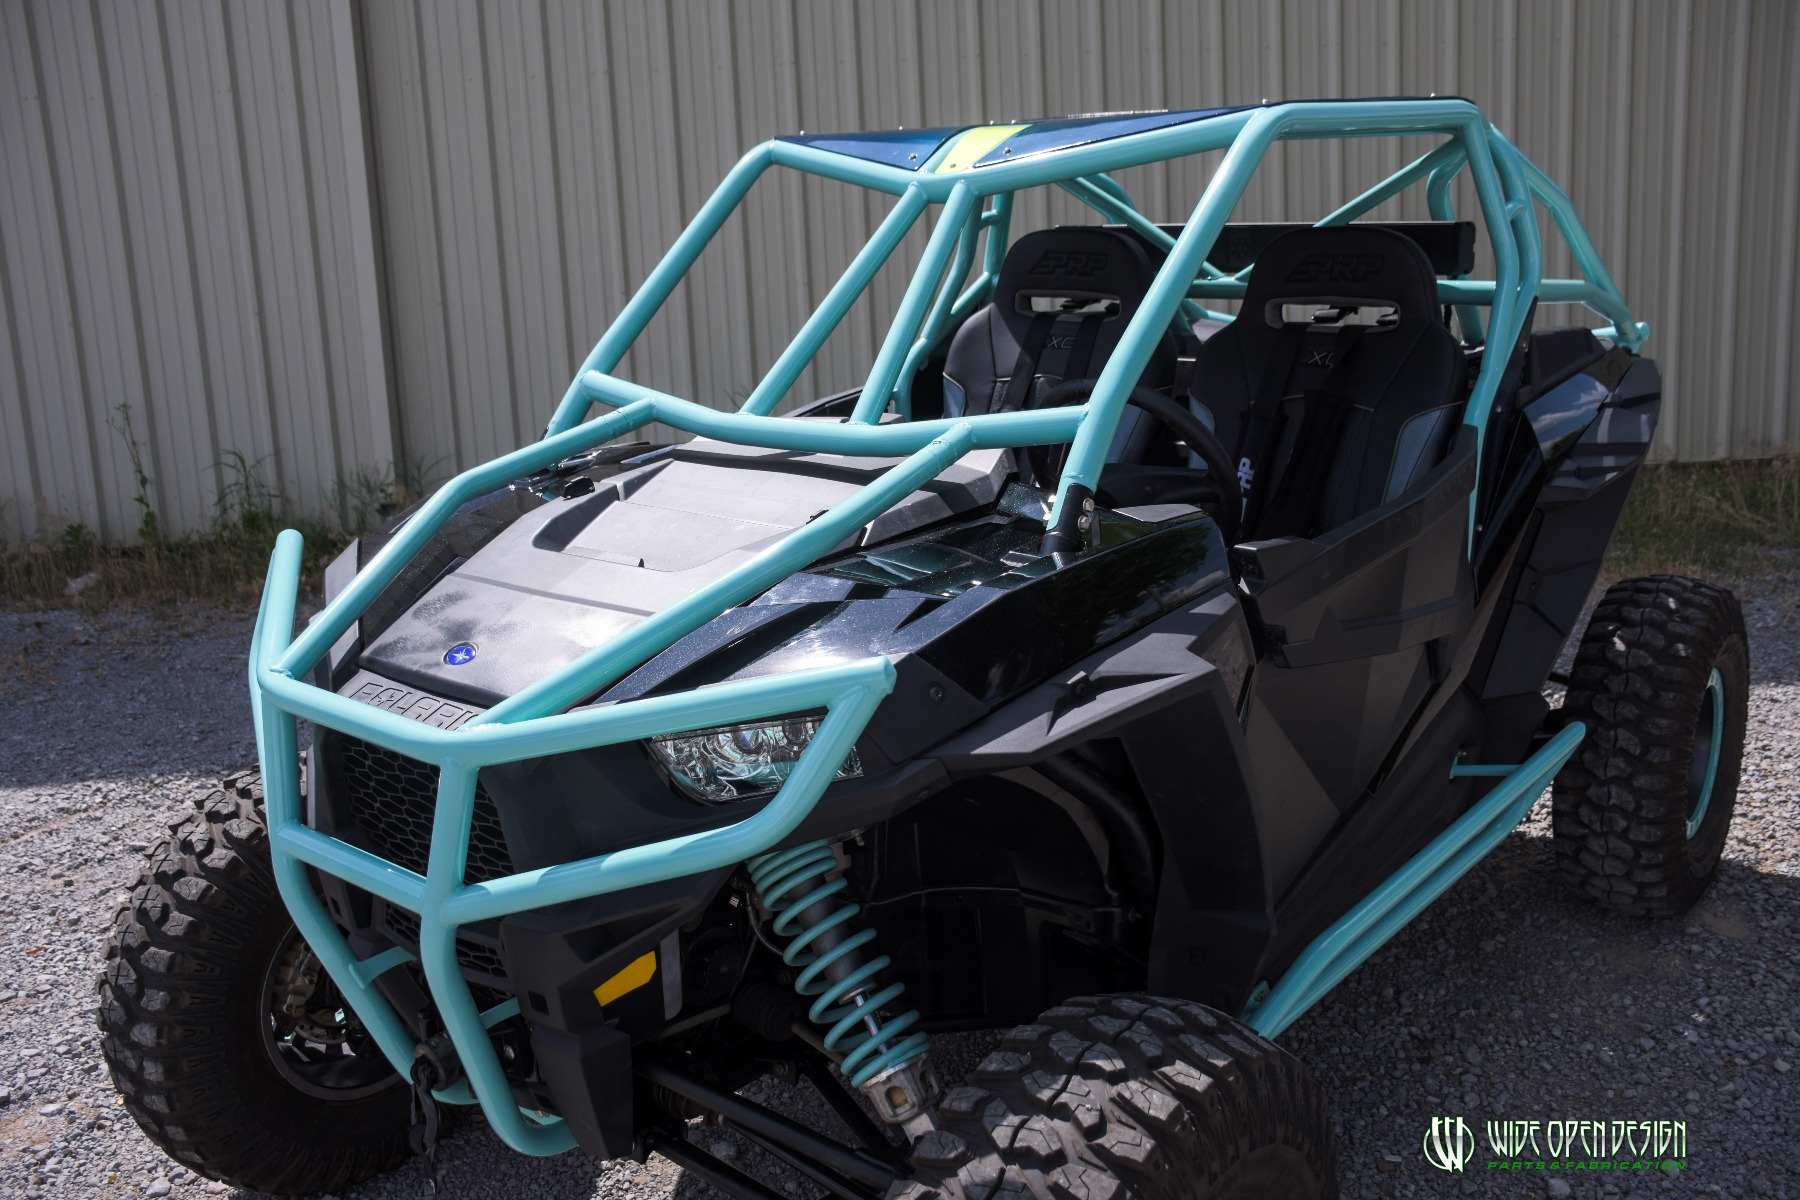 Wide Open Design UTV Cage RZR Cage Double Down featuring Double Pillars 9